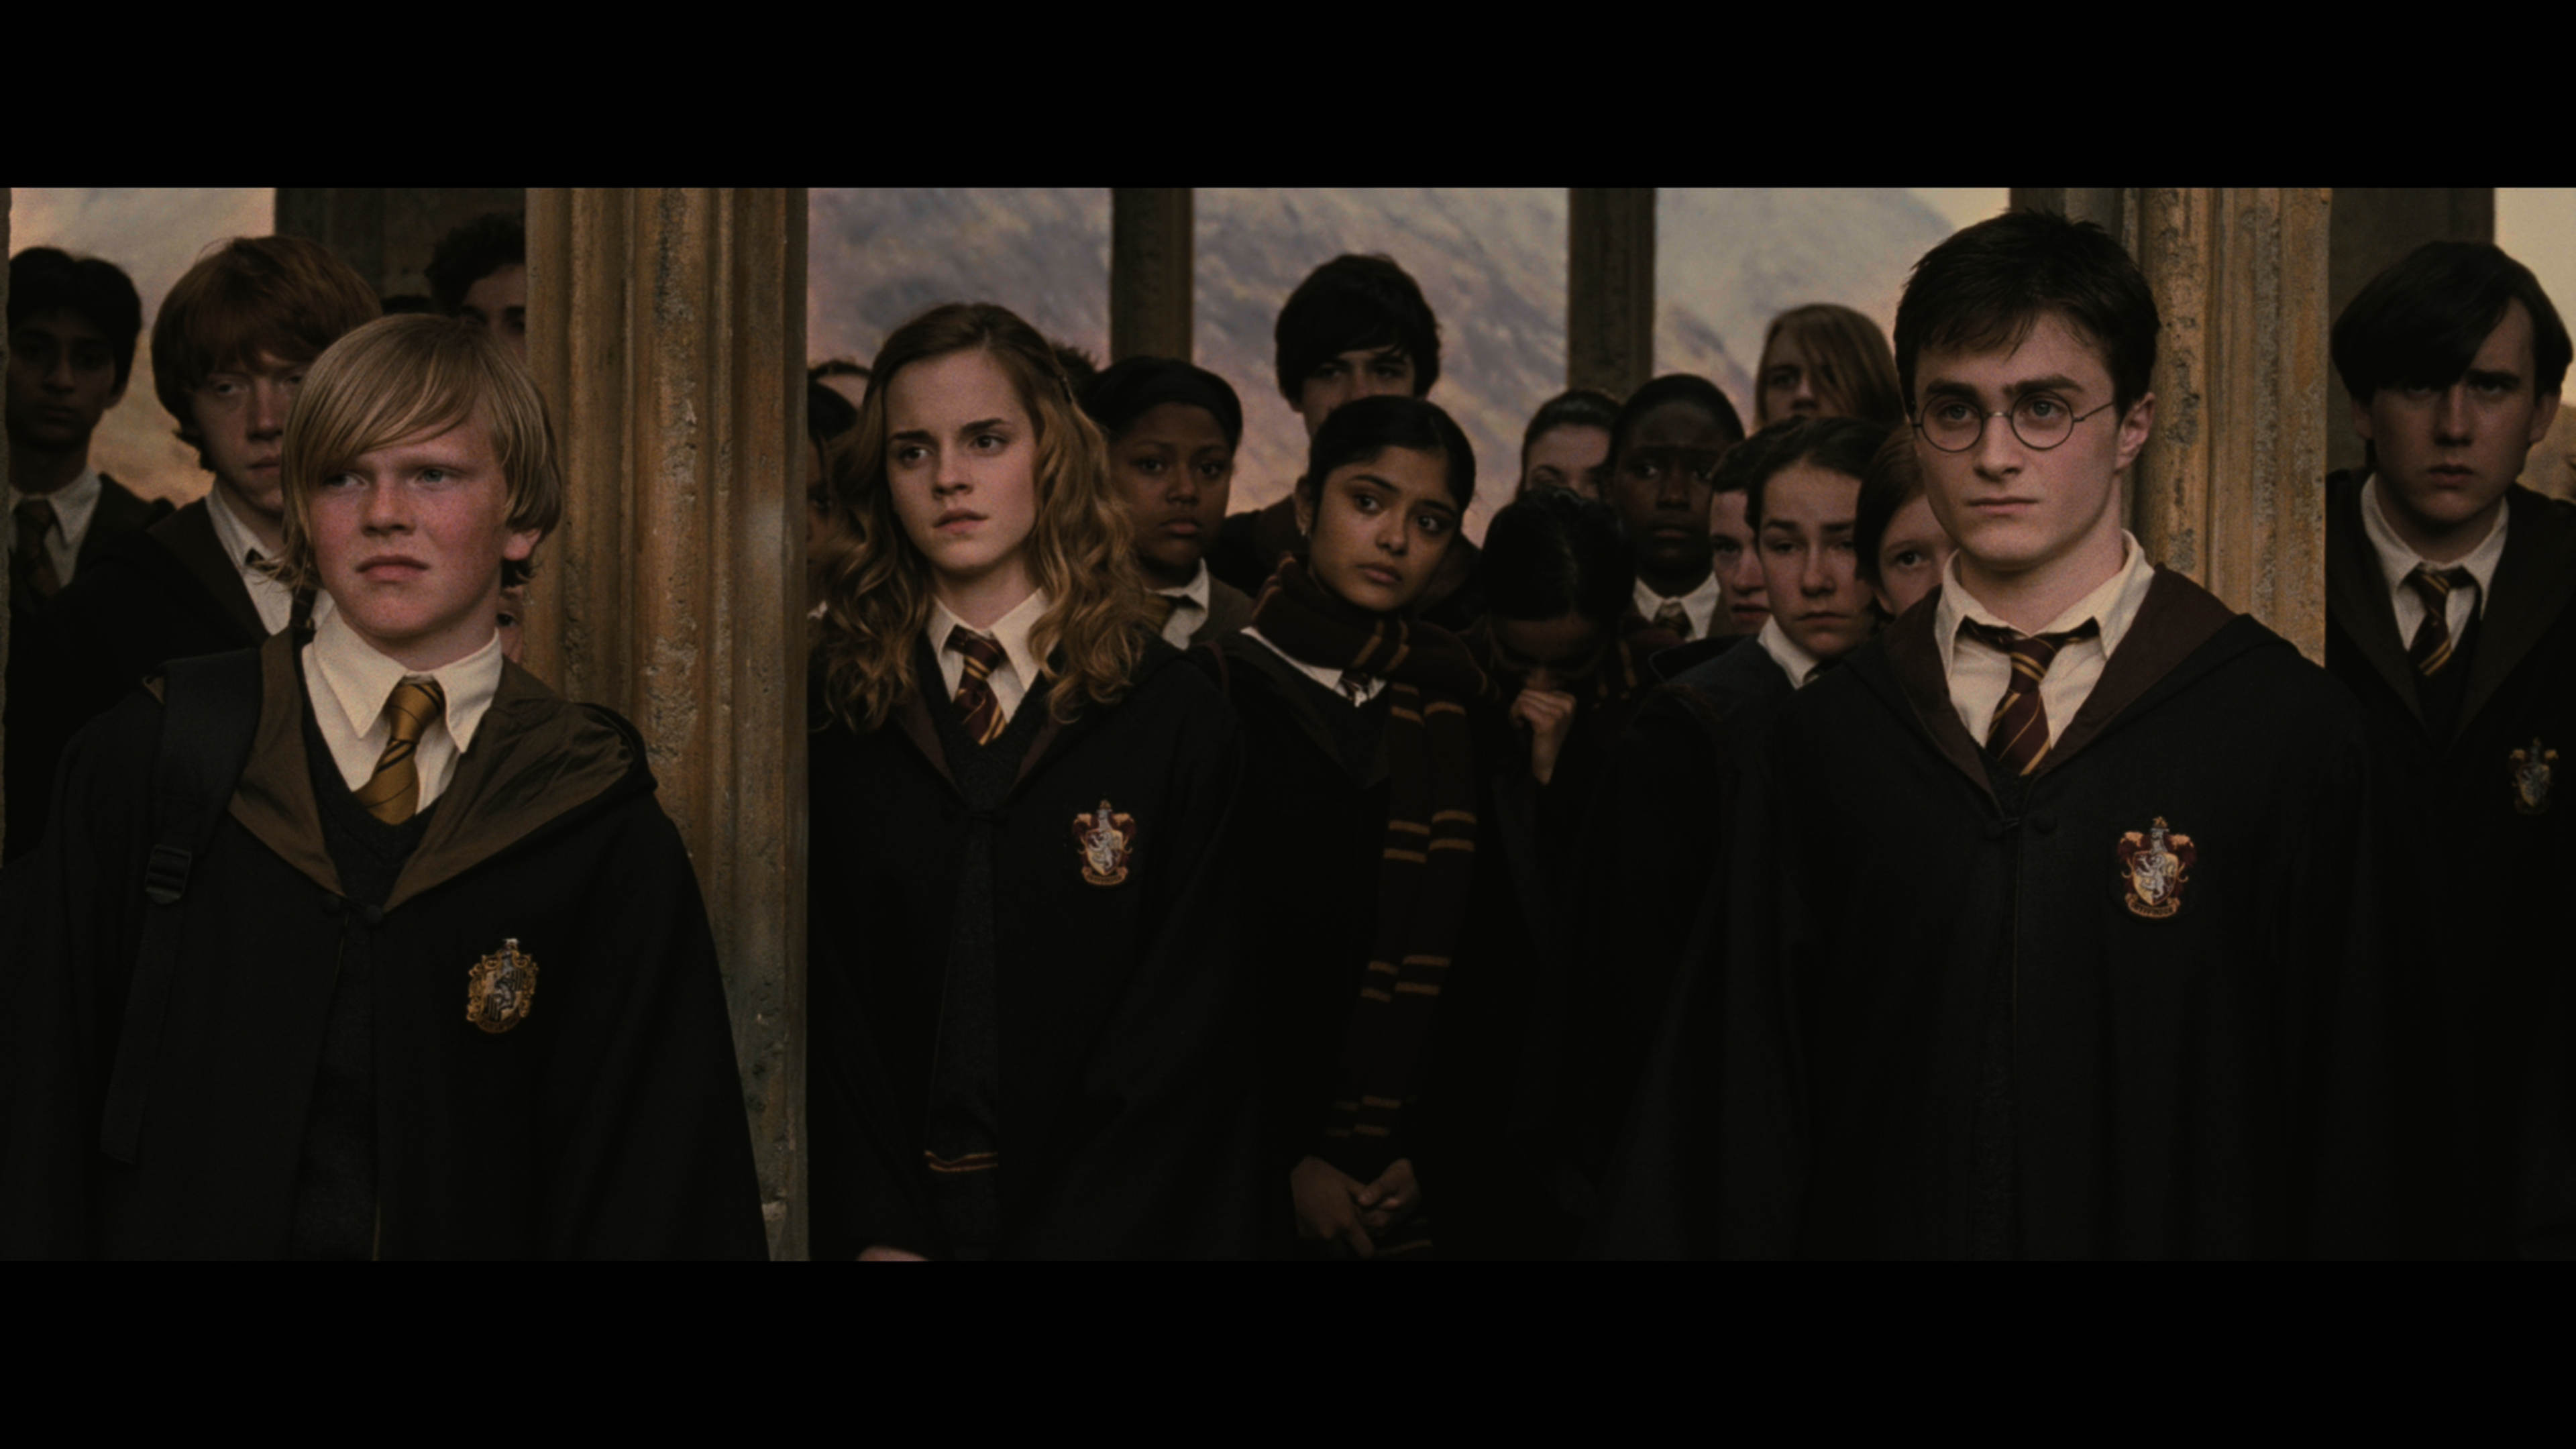 Гарри Поттер и орден Феникса / Harry Potter and the Order of the Phoenix (2007/BDRemux) 2160p, 4K